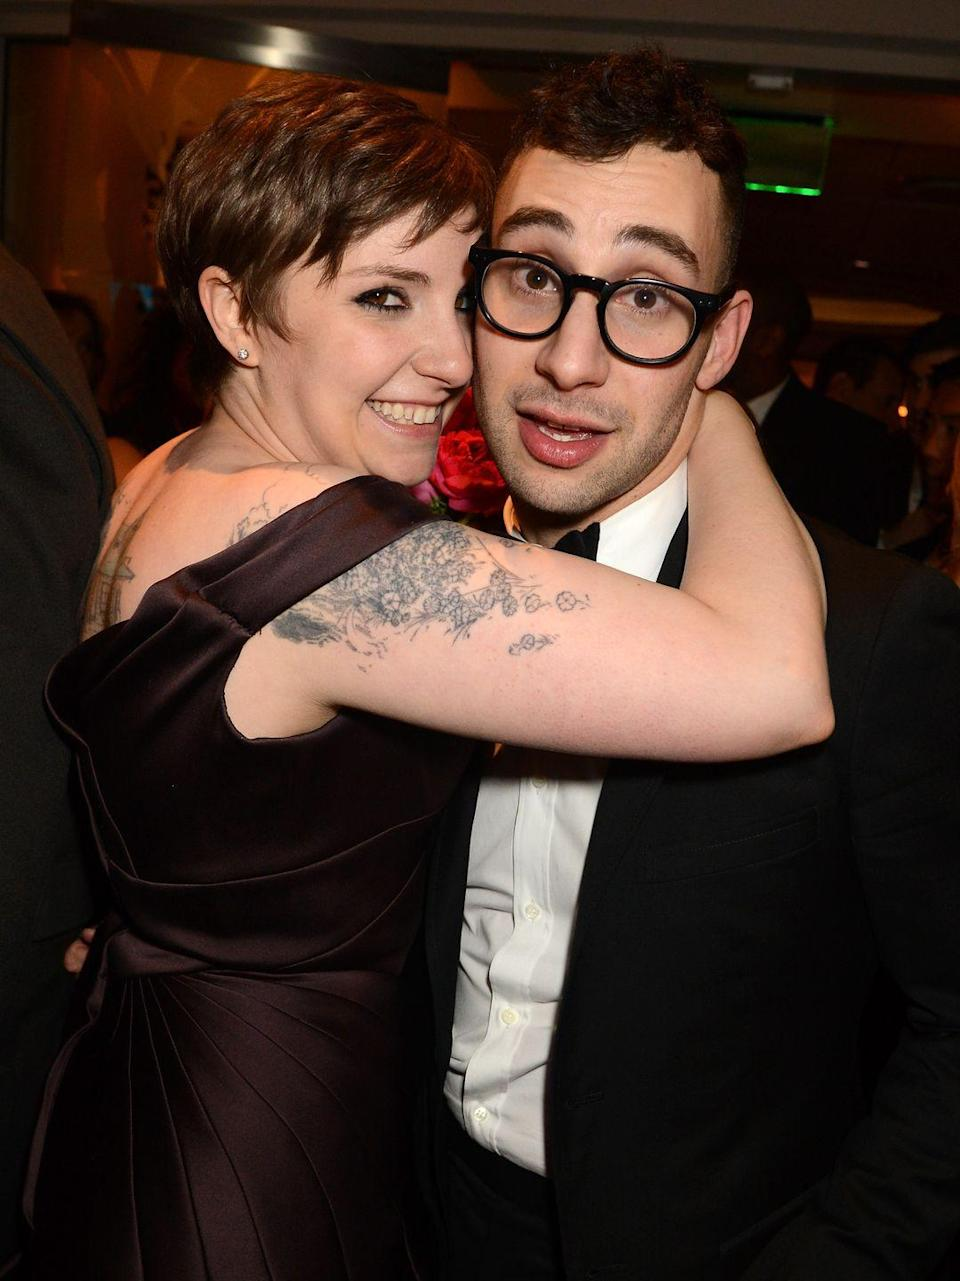 "<p>Jack Antonoff's sister, Rachel, and comedian Mike Birbiglia set the couple up. </p><p>""It was a blind date by modern standards. I mean, I used the internet,"" Antonoff explained to <a href=""http://www.vulture.com/2014/06/jack-antonoff-solo-album-bleachers.html?mid=nymag_press"" rel=""nofollow noopener"" target=""_blank"" data-ylk=""slk:Vulture"" class=""link rapid-noclick-resp"">Vulture</a>. ""[On the date] I told Lena everything about my whole life, because when you really like someone, you want them to know everything about you.""</p>"